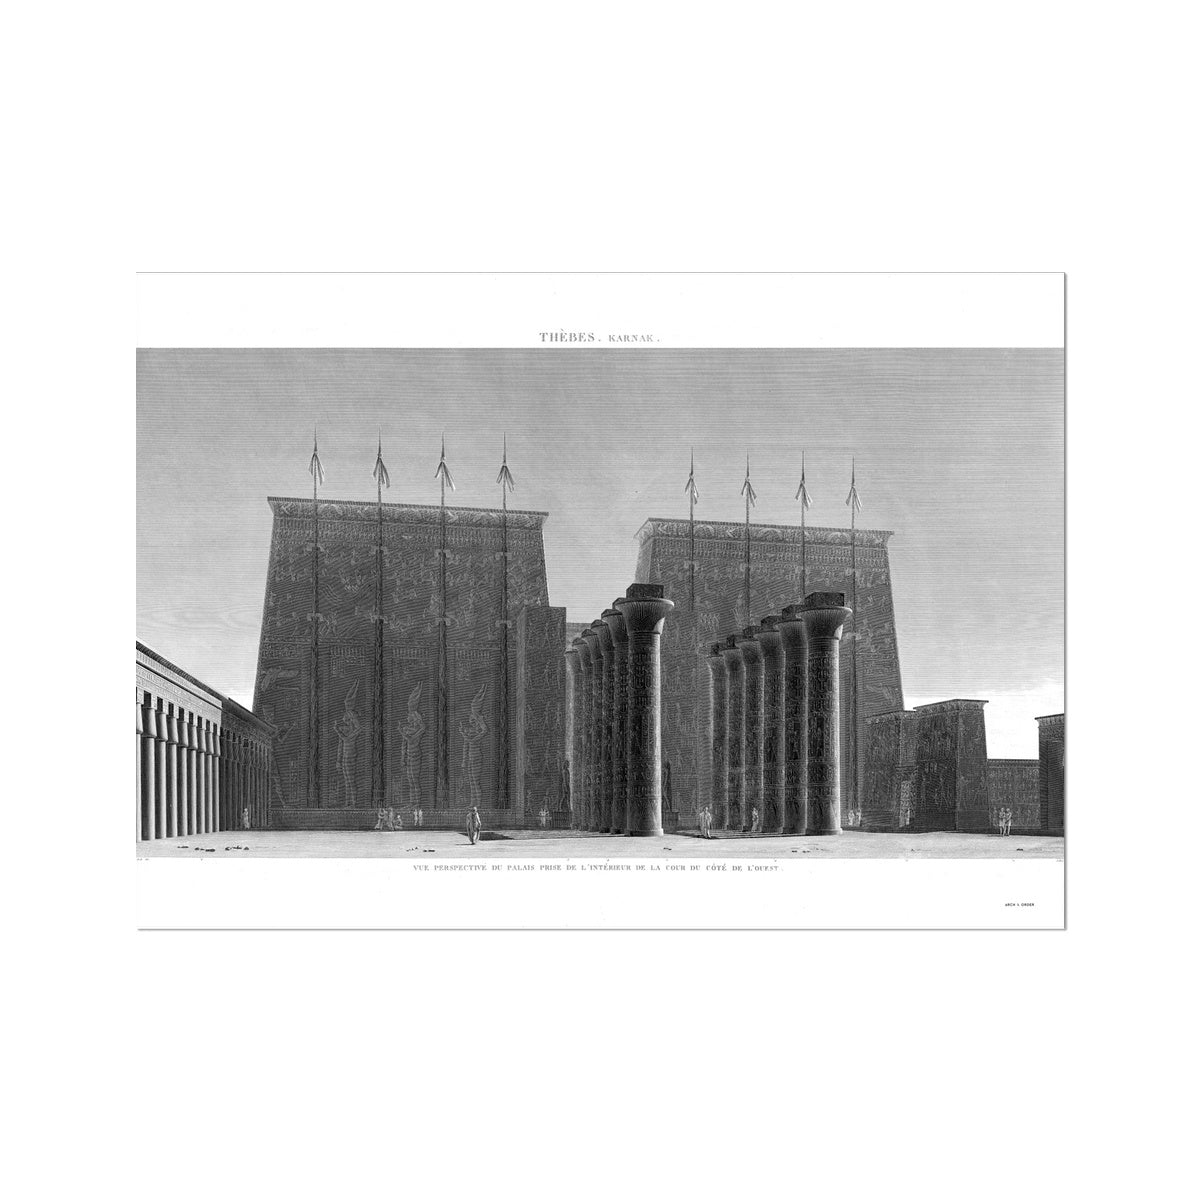 Courtyard View of the Palace - Karnak - Thebes Egypt -  Etching Paper Print